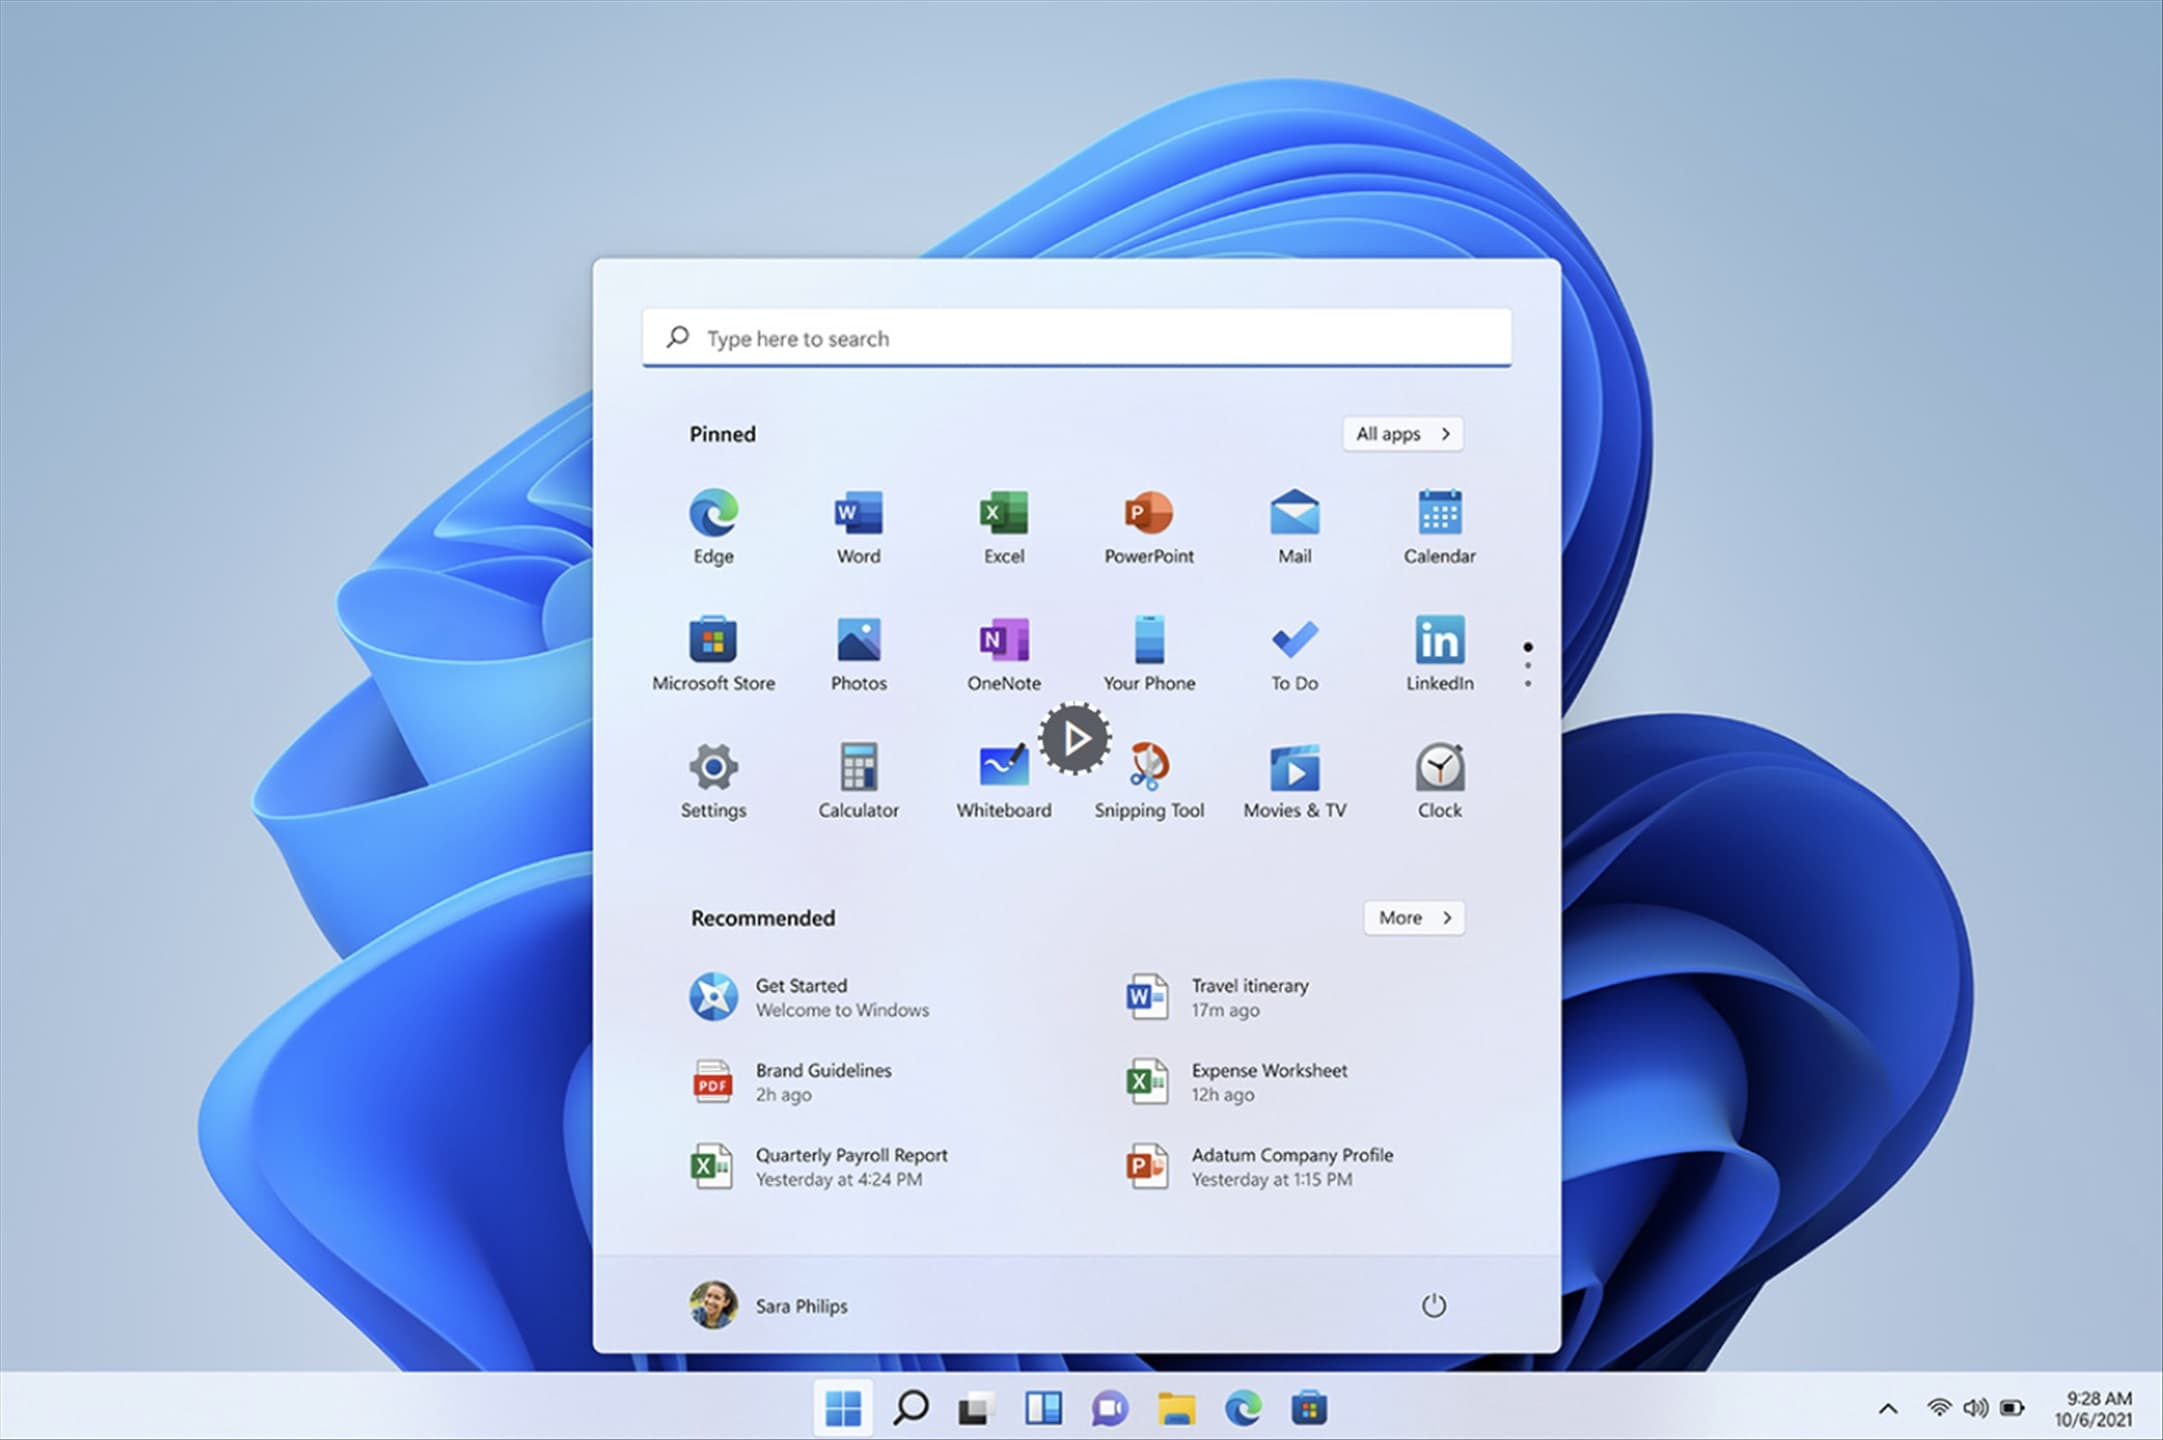 5 features I like on the new Windows 11